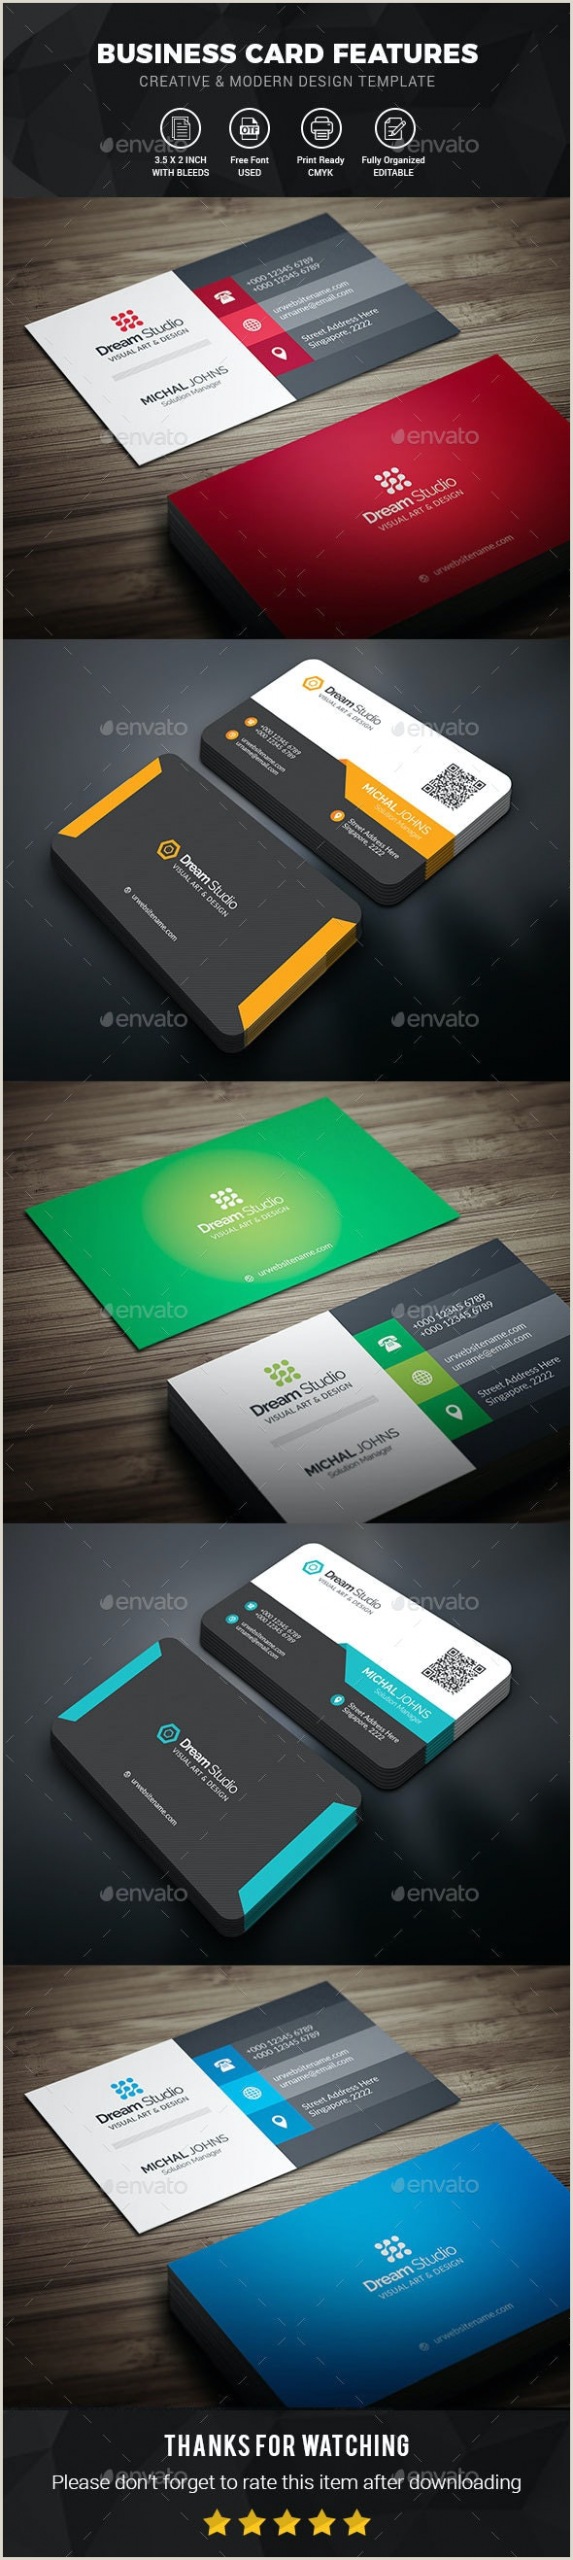 Awesome Business Card Ideas 7 Best Stationery & Design Templates For November 2019